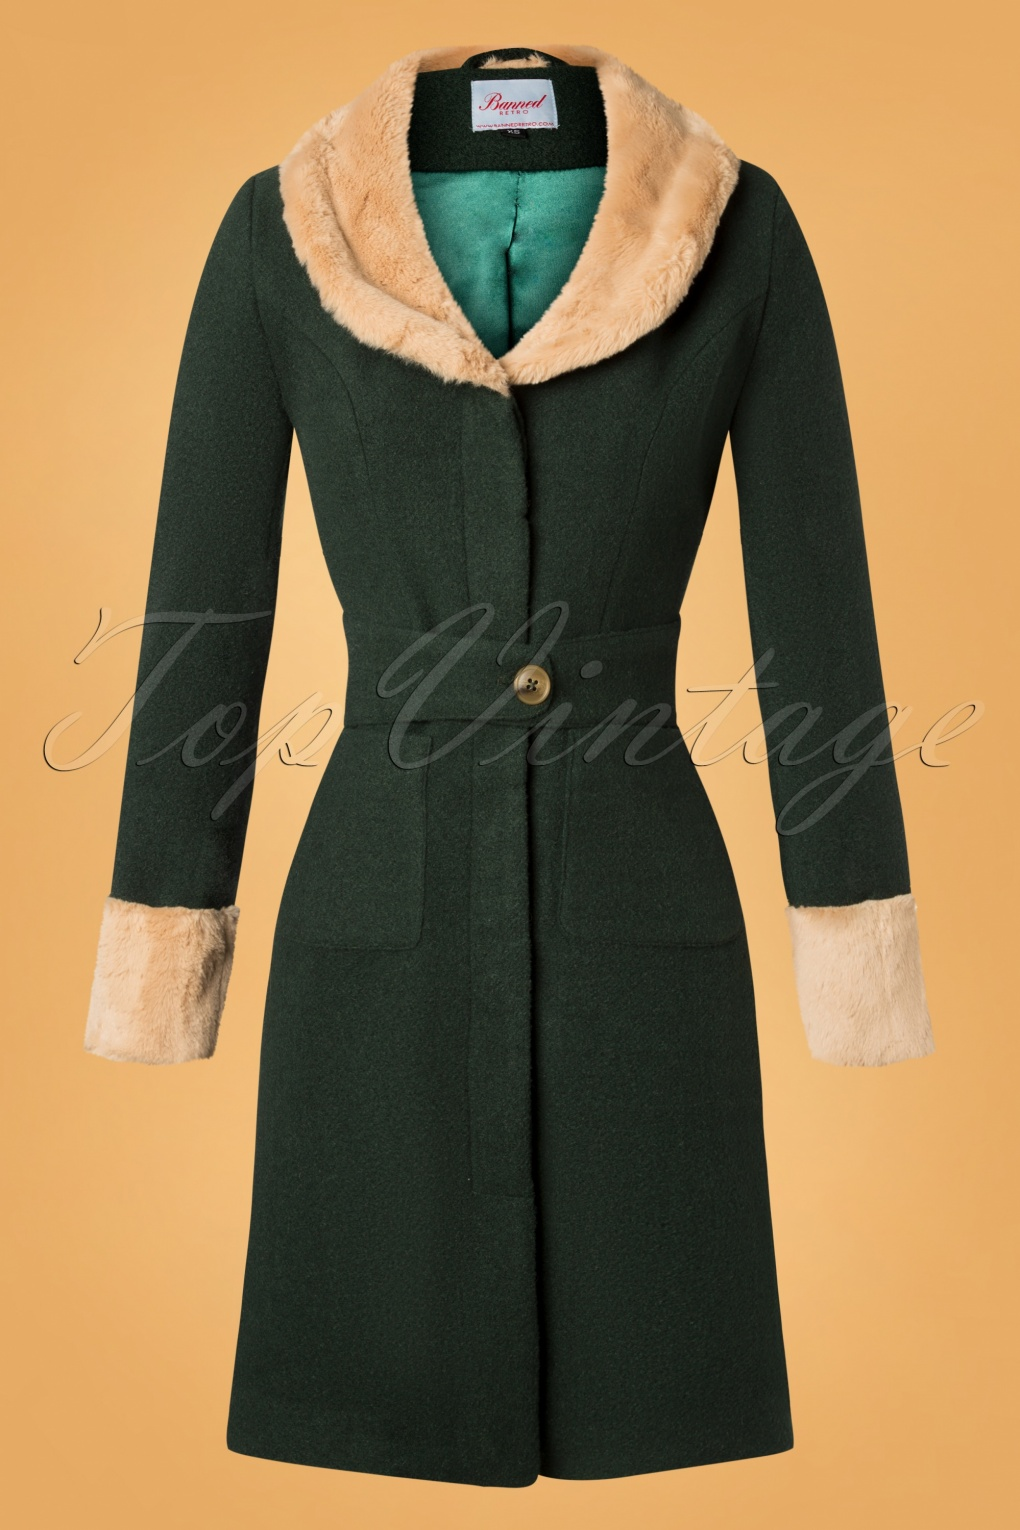 1940s Style Coats and Jackets for Sale 40s Fantastic Fur Collar Coat in Green £106.17 AT vintagedancer.com